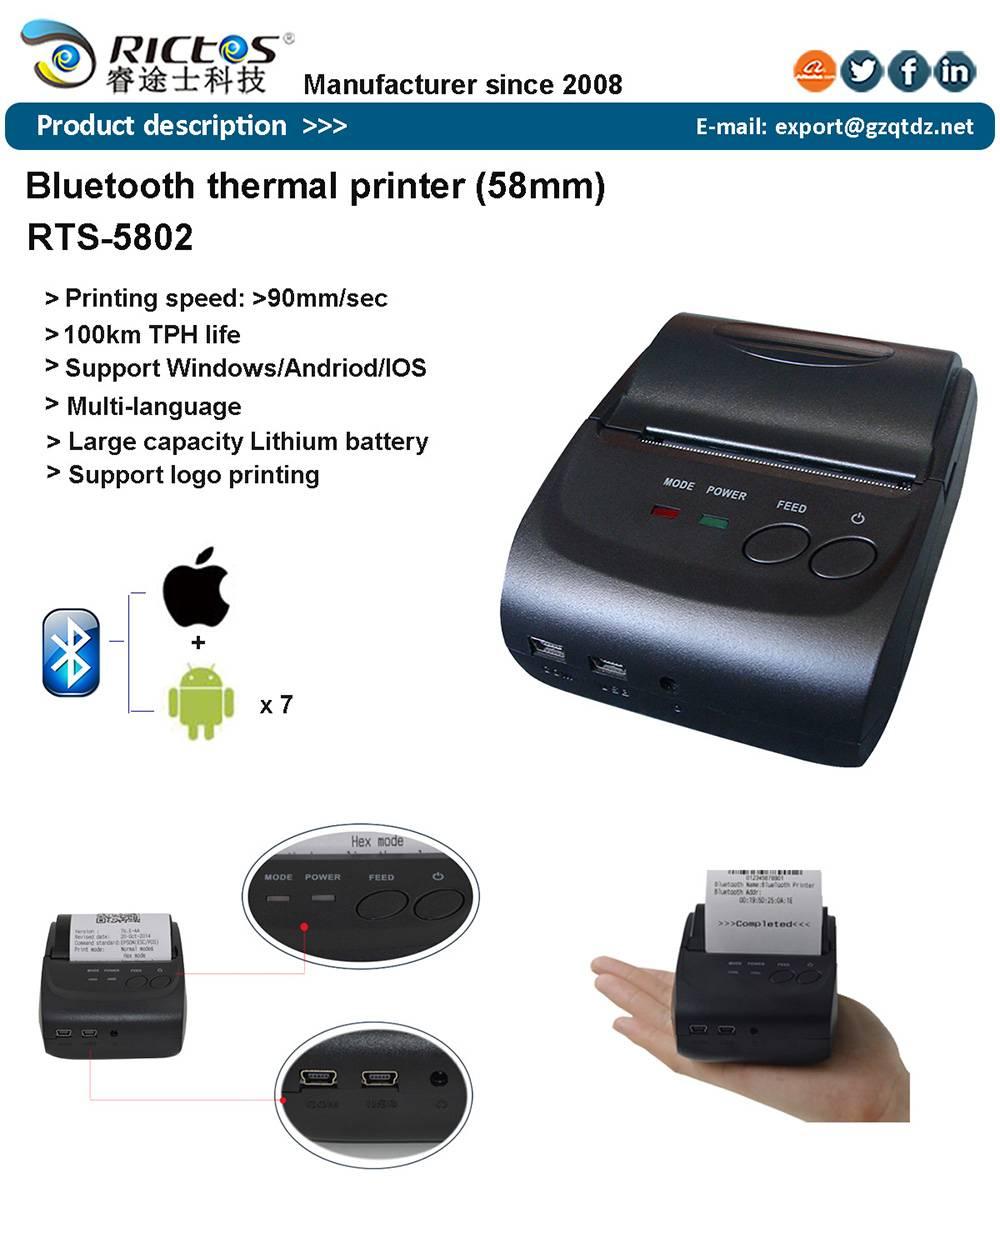 Handheld bluetooth thermal printer 58mm